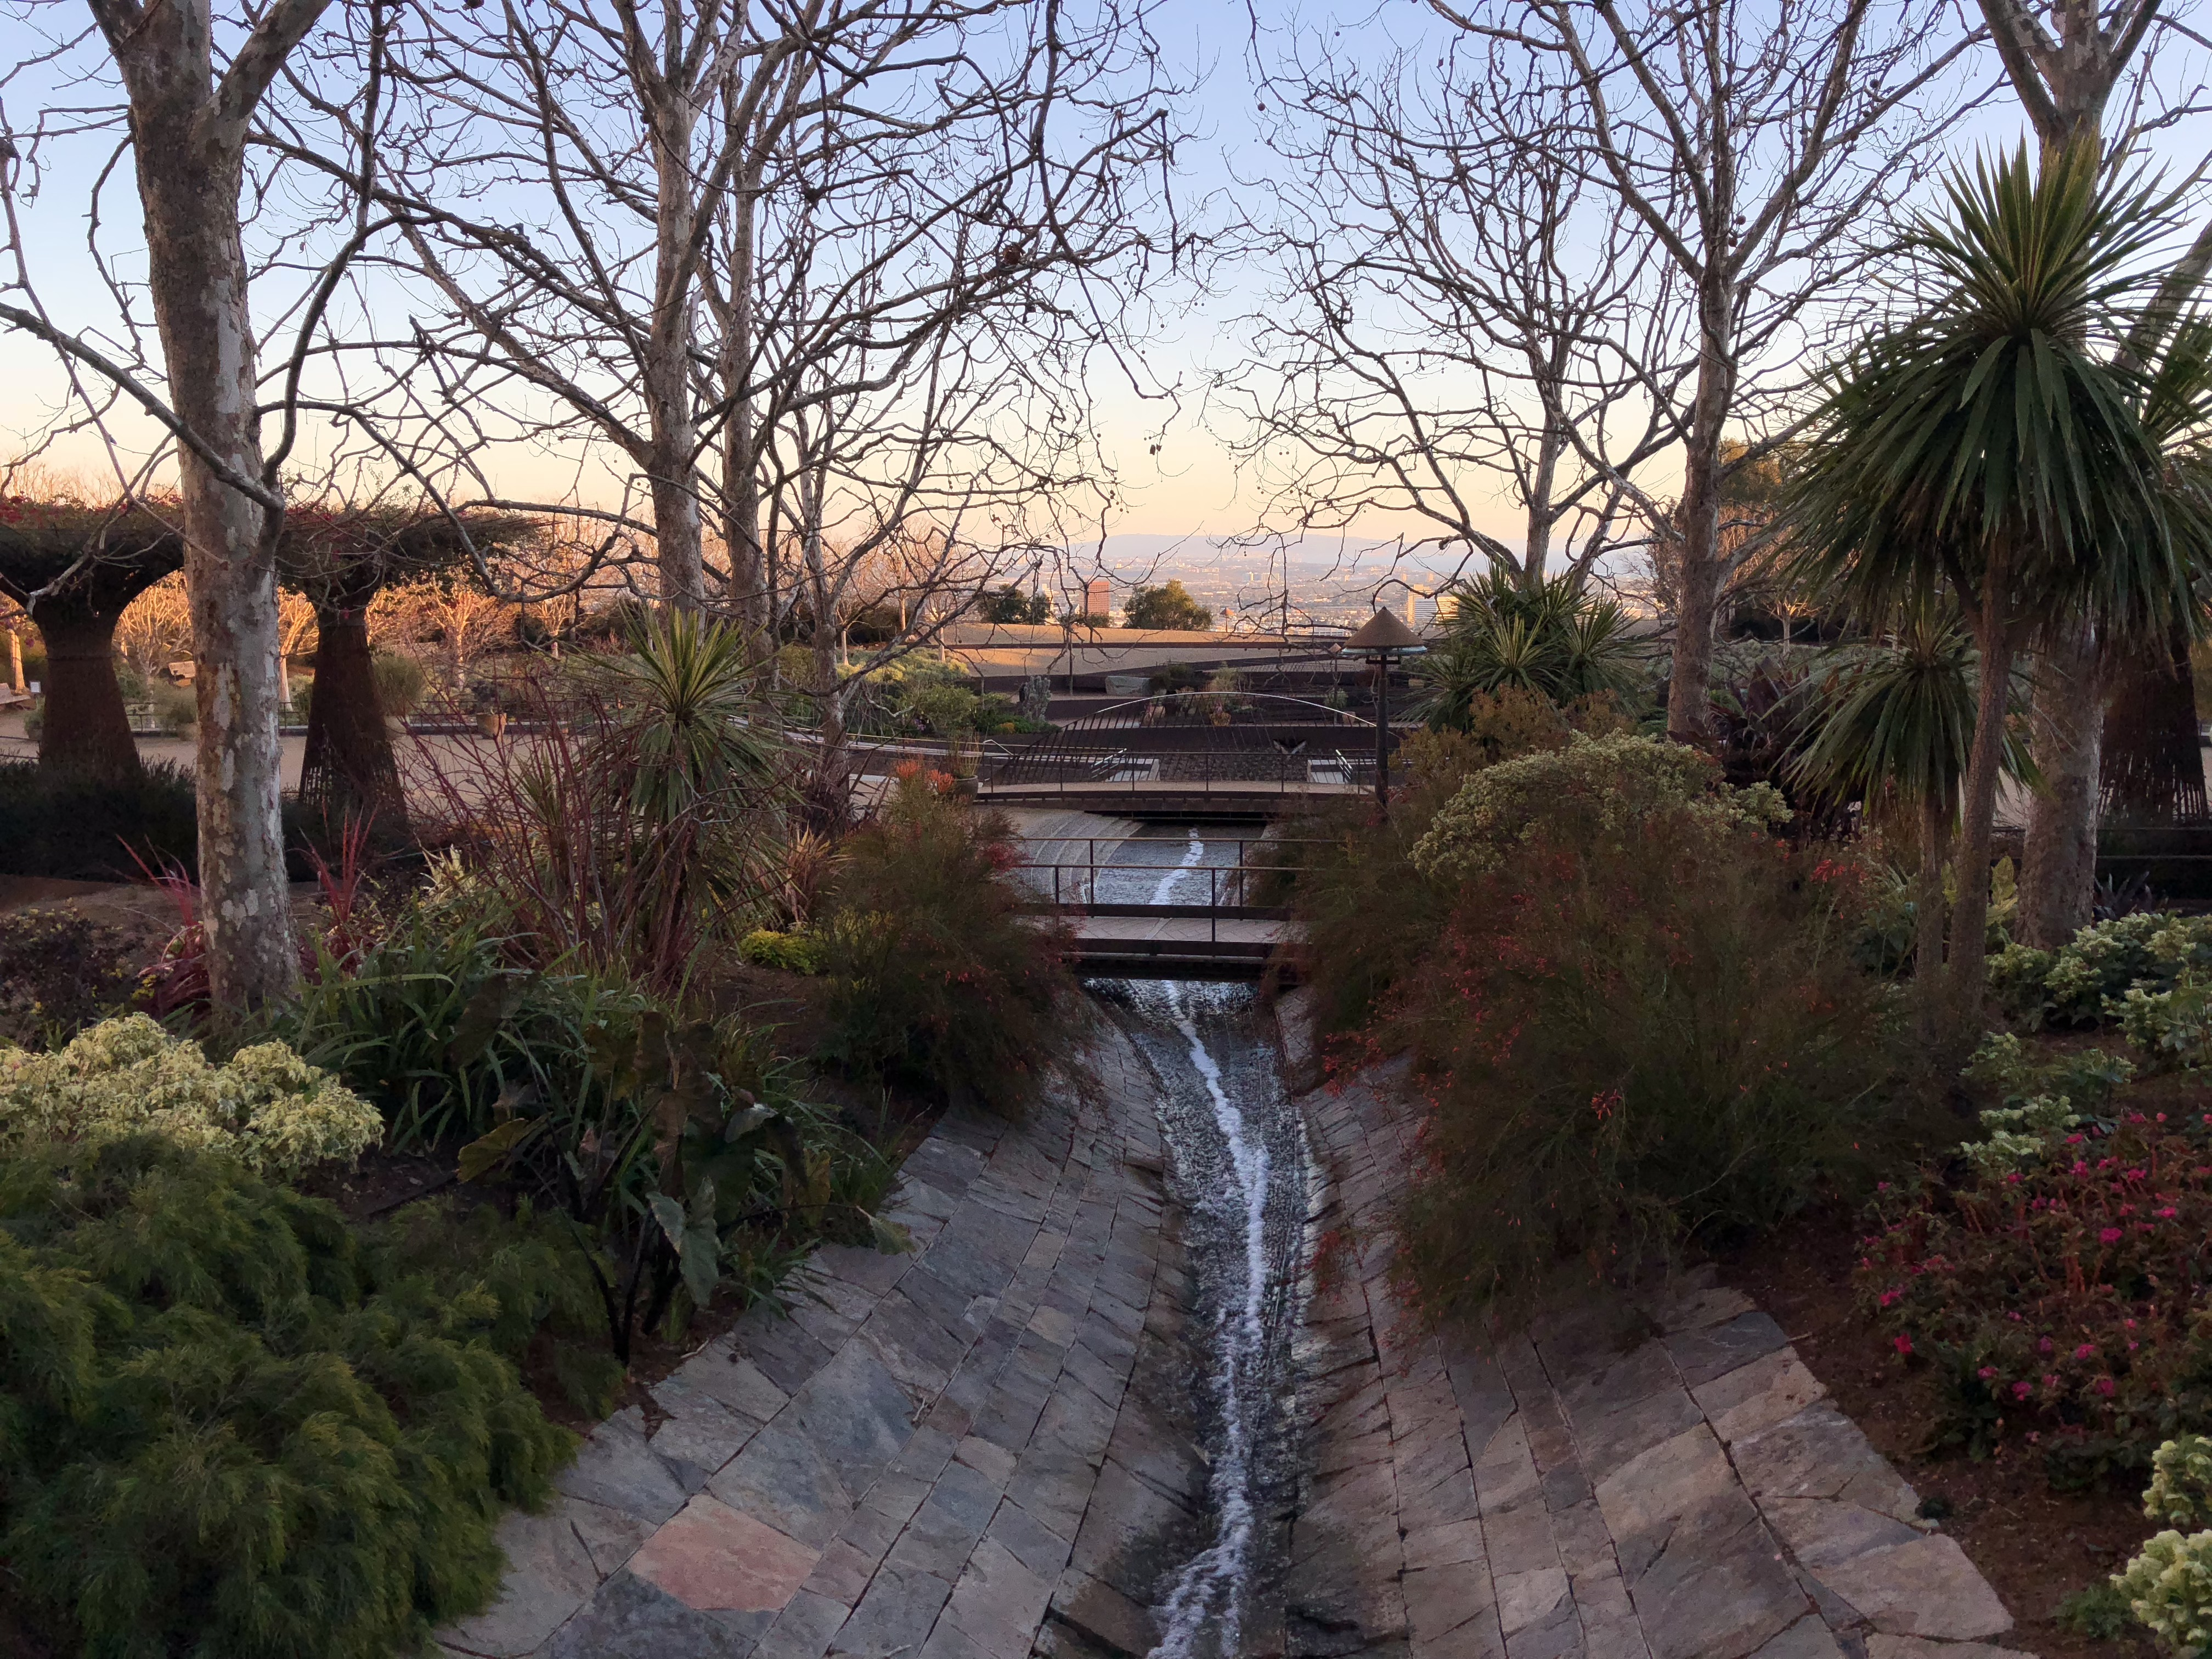 Sunset at the Getty Center